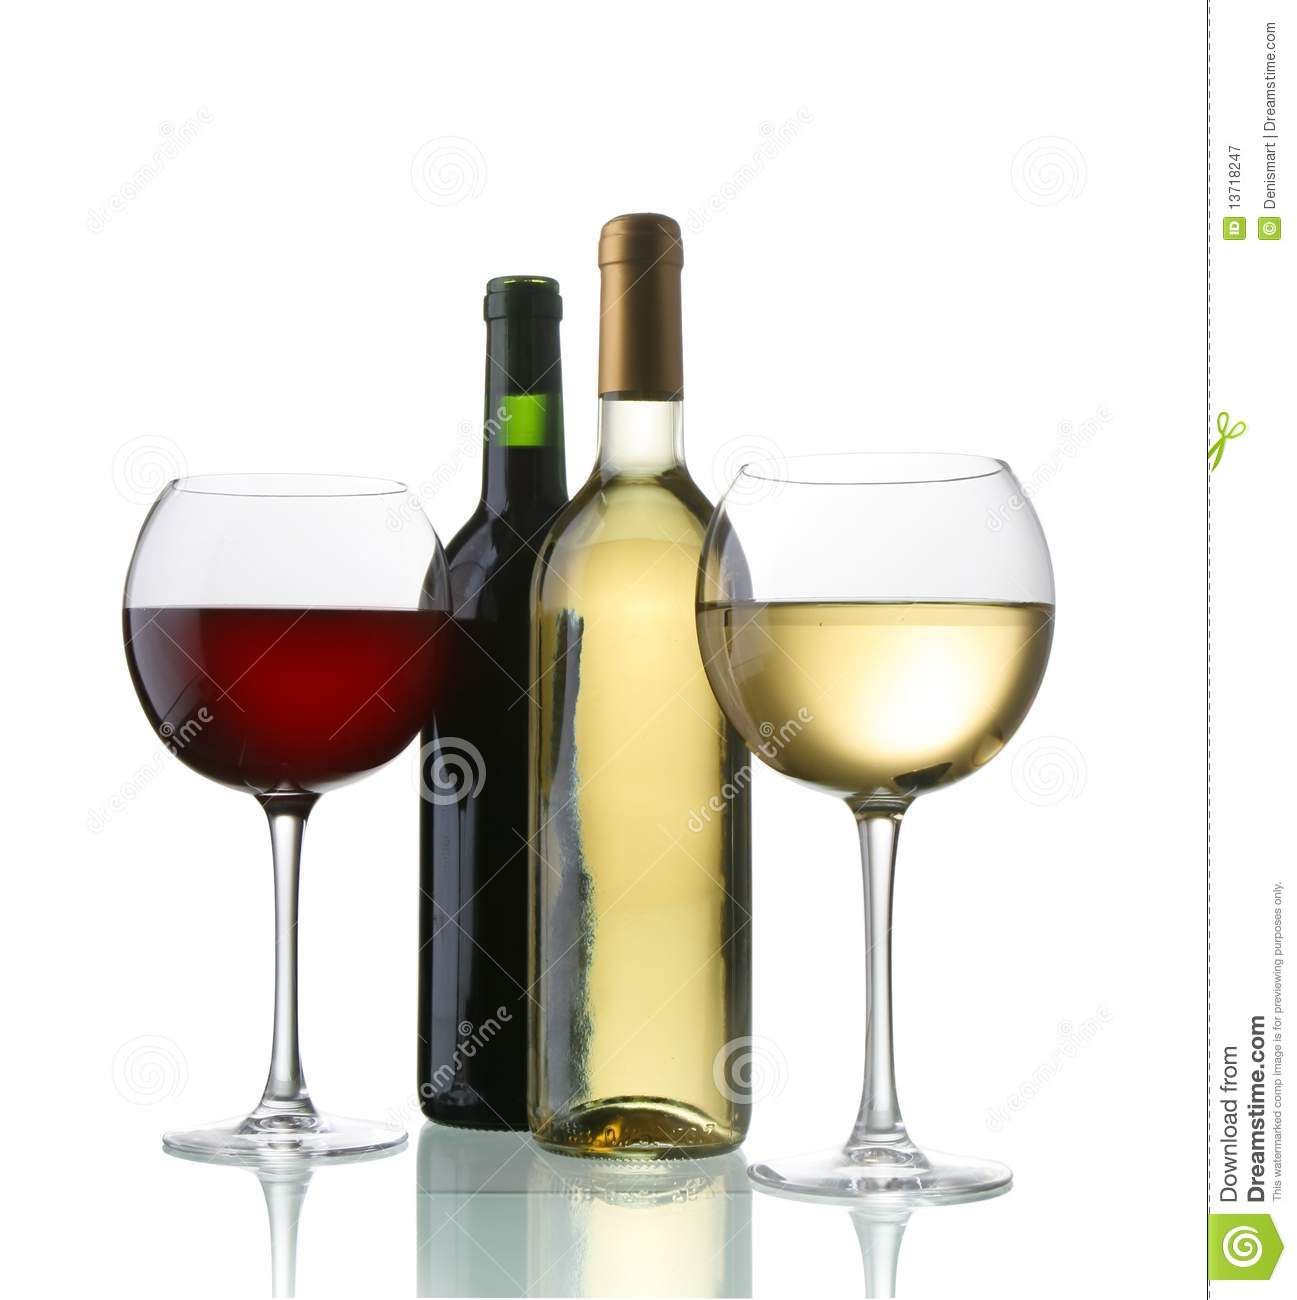 Wine bottles and glasses stock image. Image of glass.